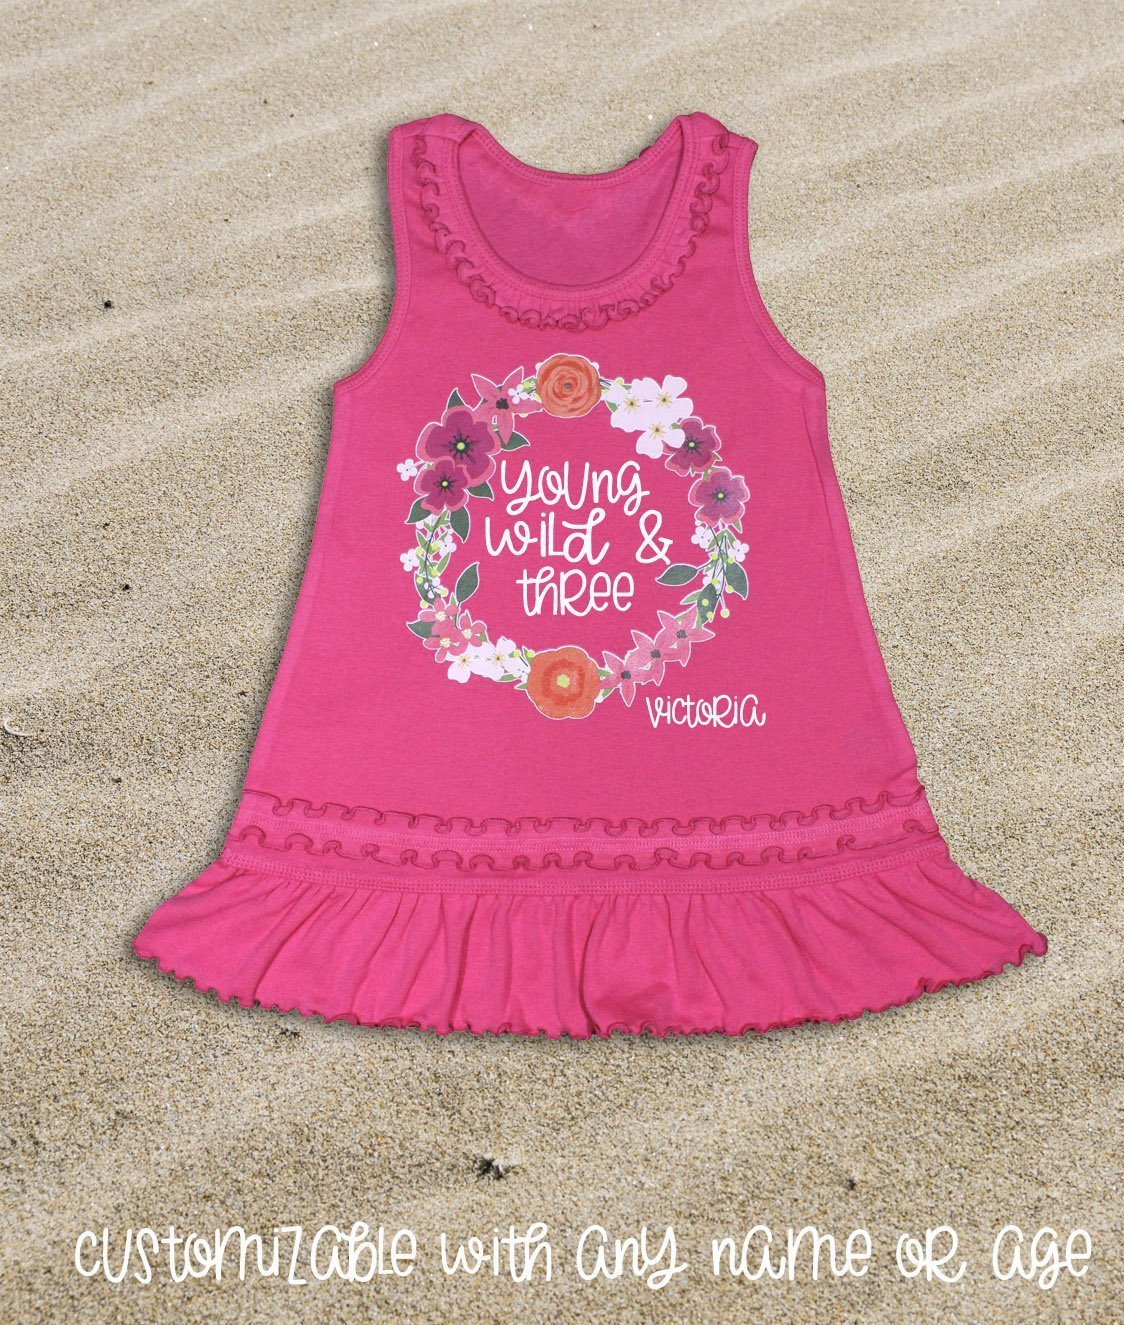 3rd Birthday Outfit Young Wild and Three Dress 3rd Birthday Girl Dress Third Birthday Girl Third Birthday Dress Girl 3rd Birthday Dress